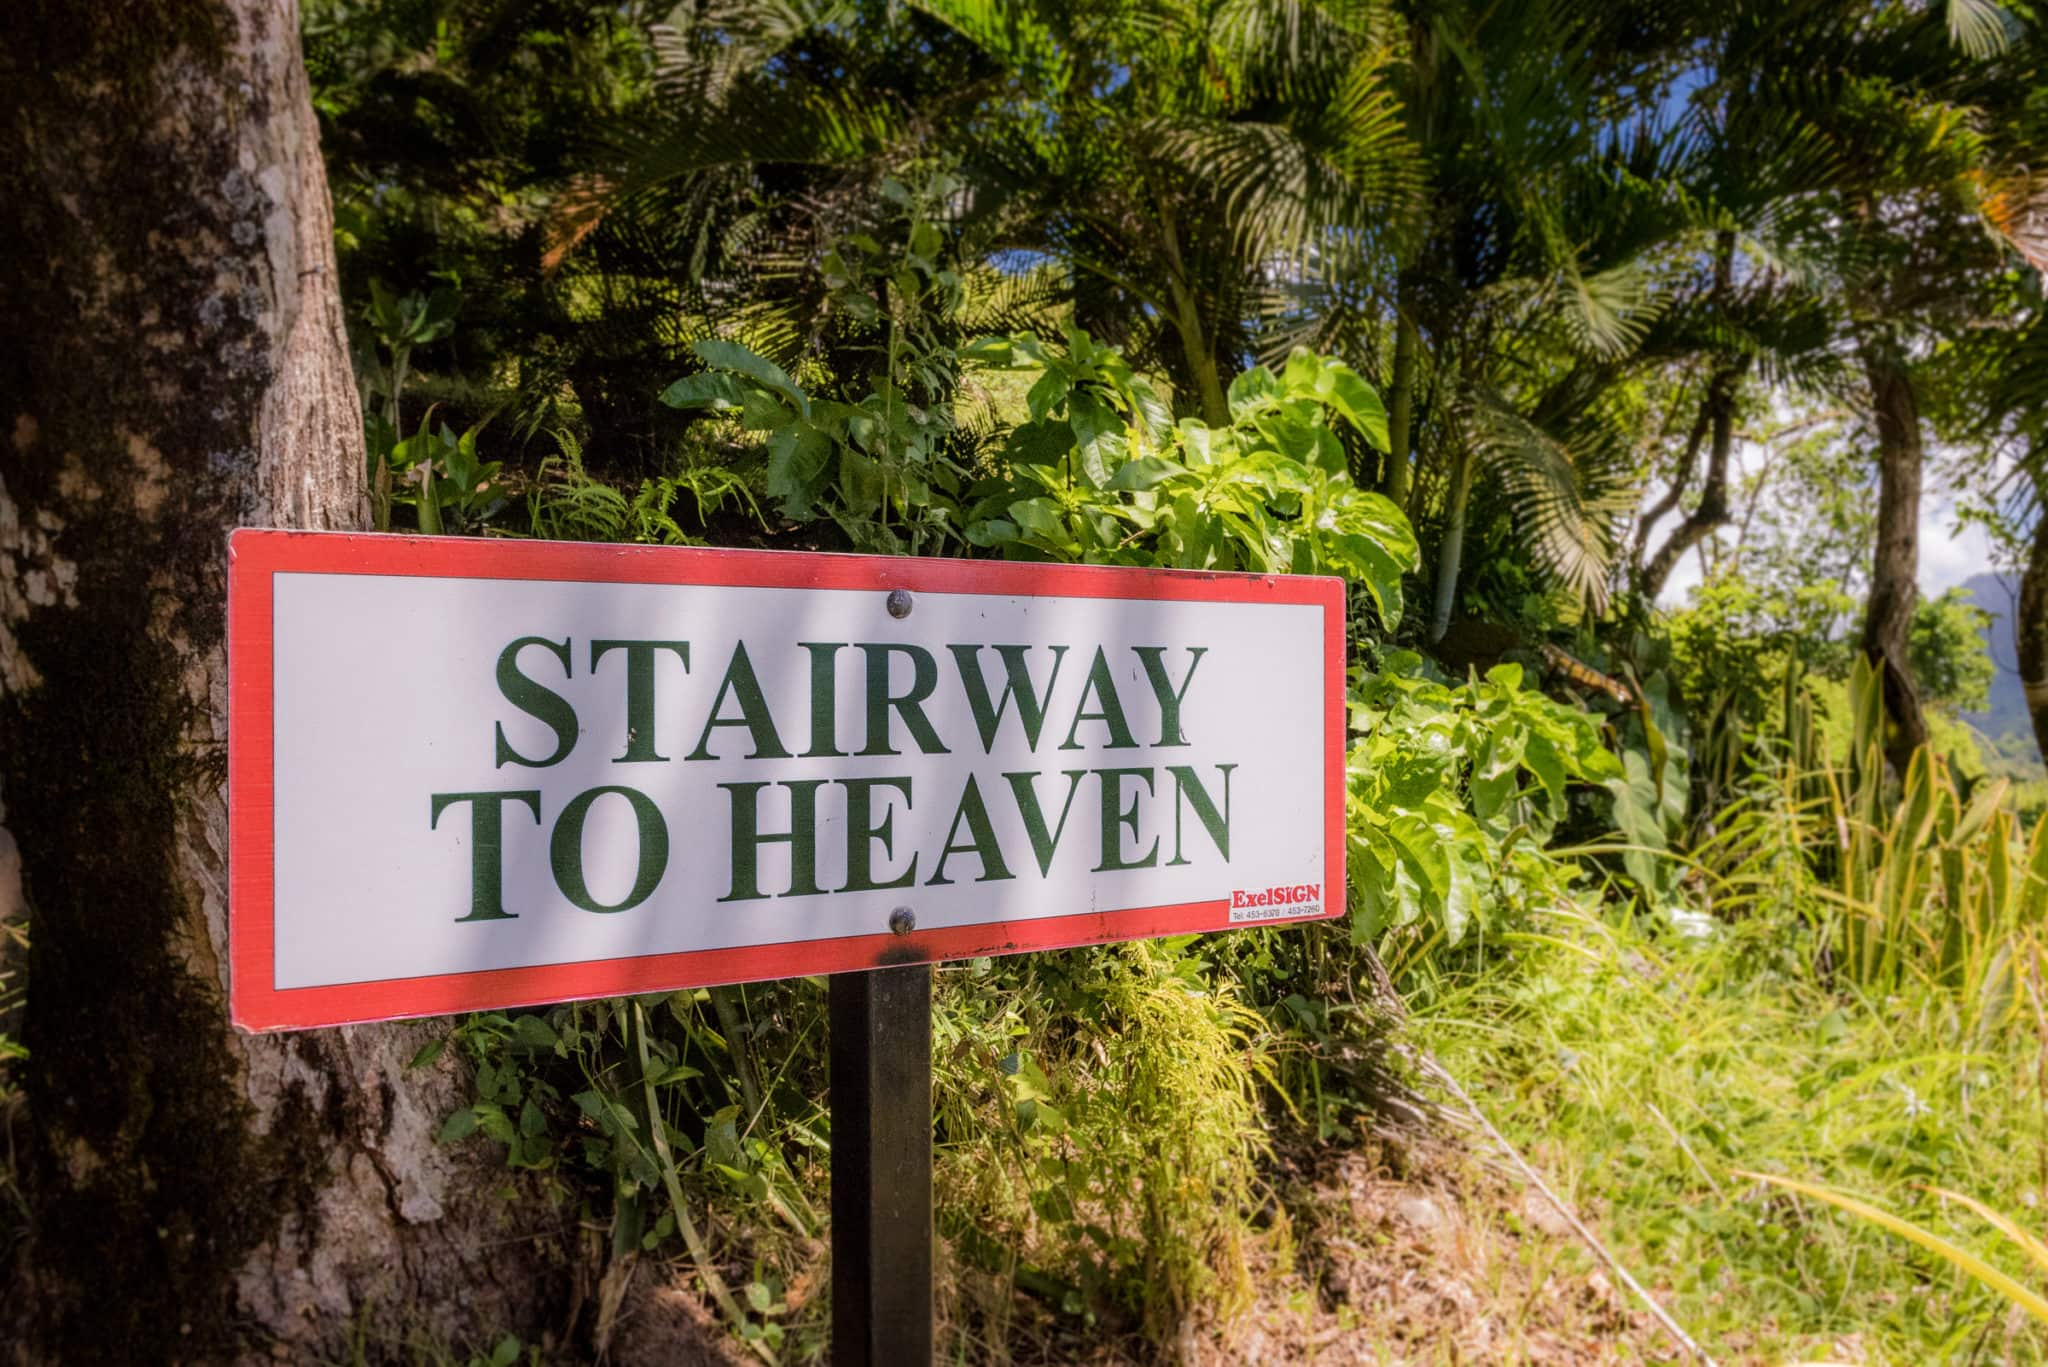 Tet Paul Stairway to Heaven sign by Patrick Bennett